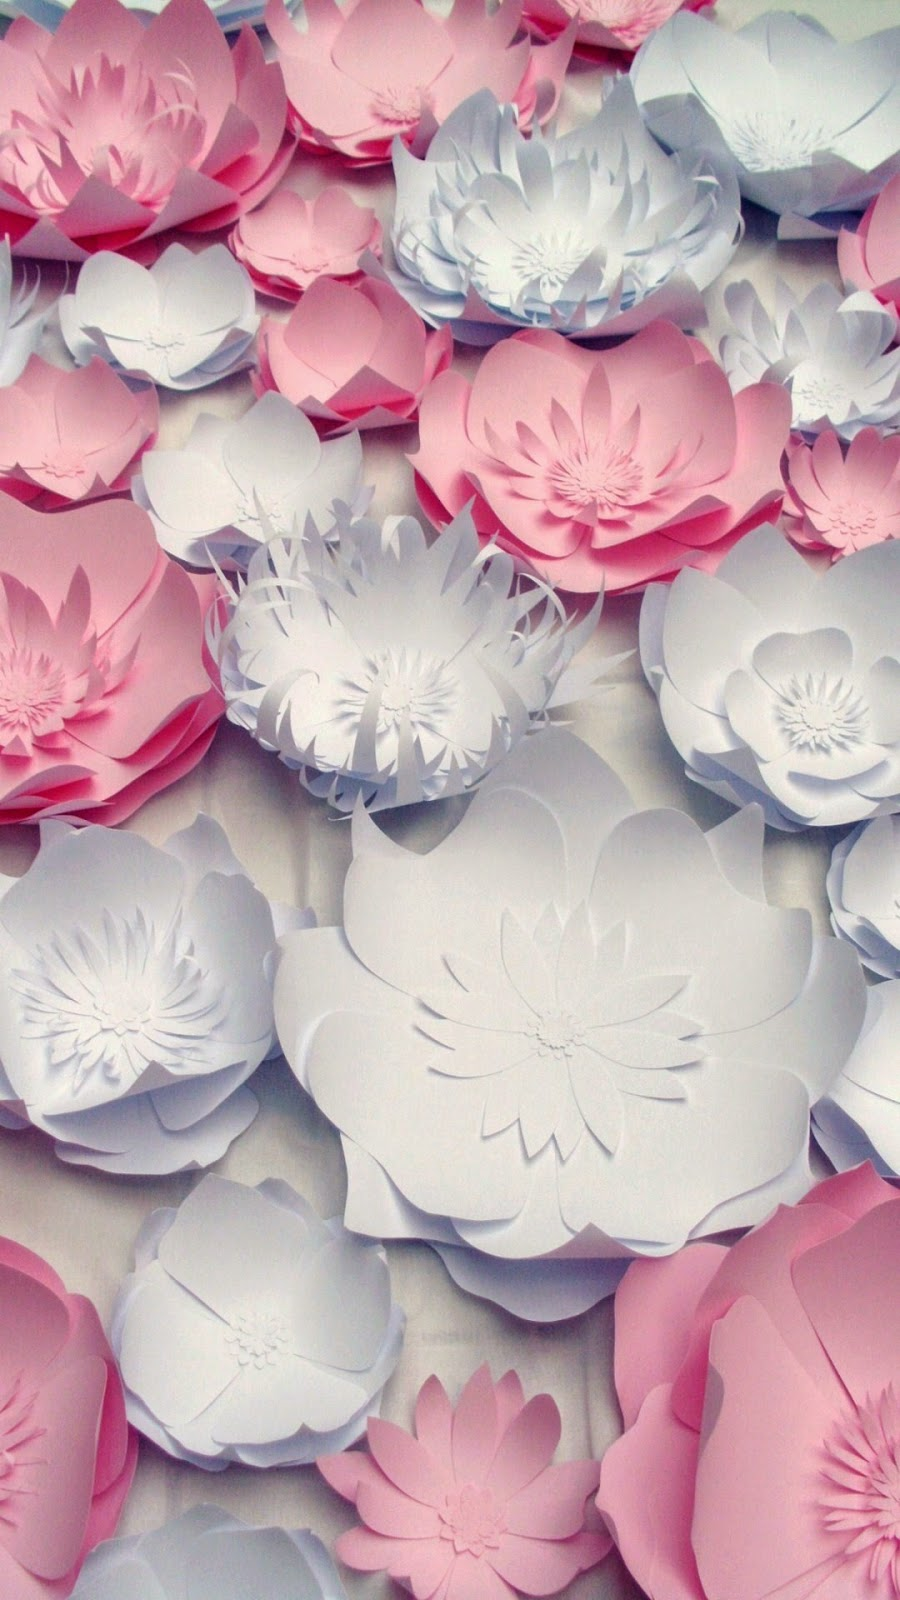 Large handmade paper flowers